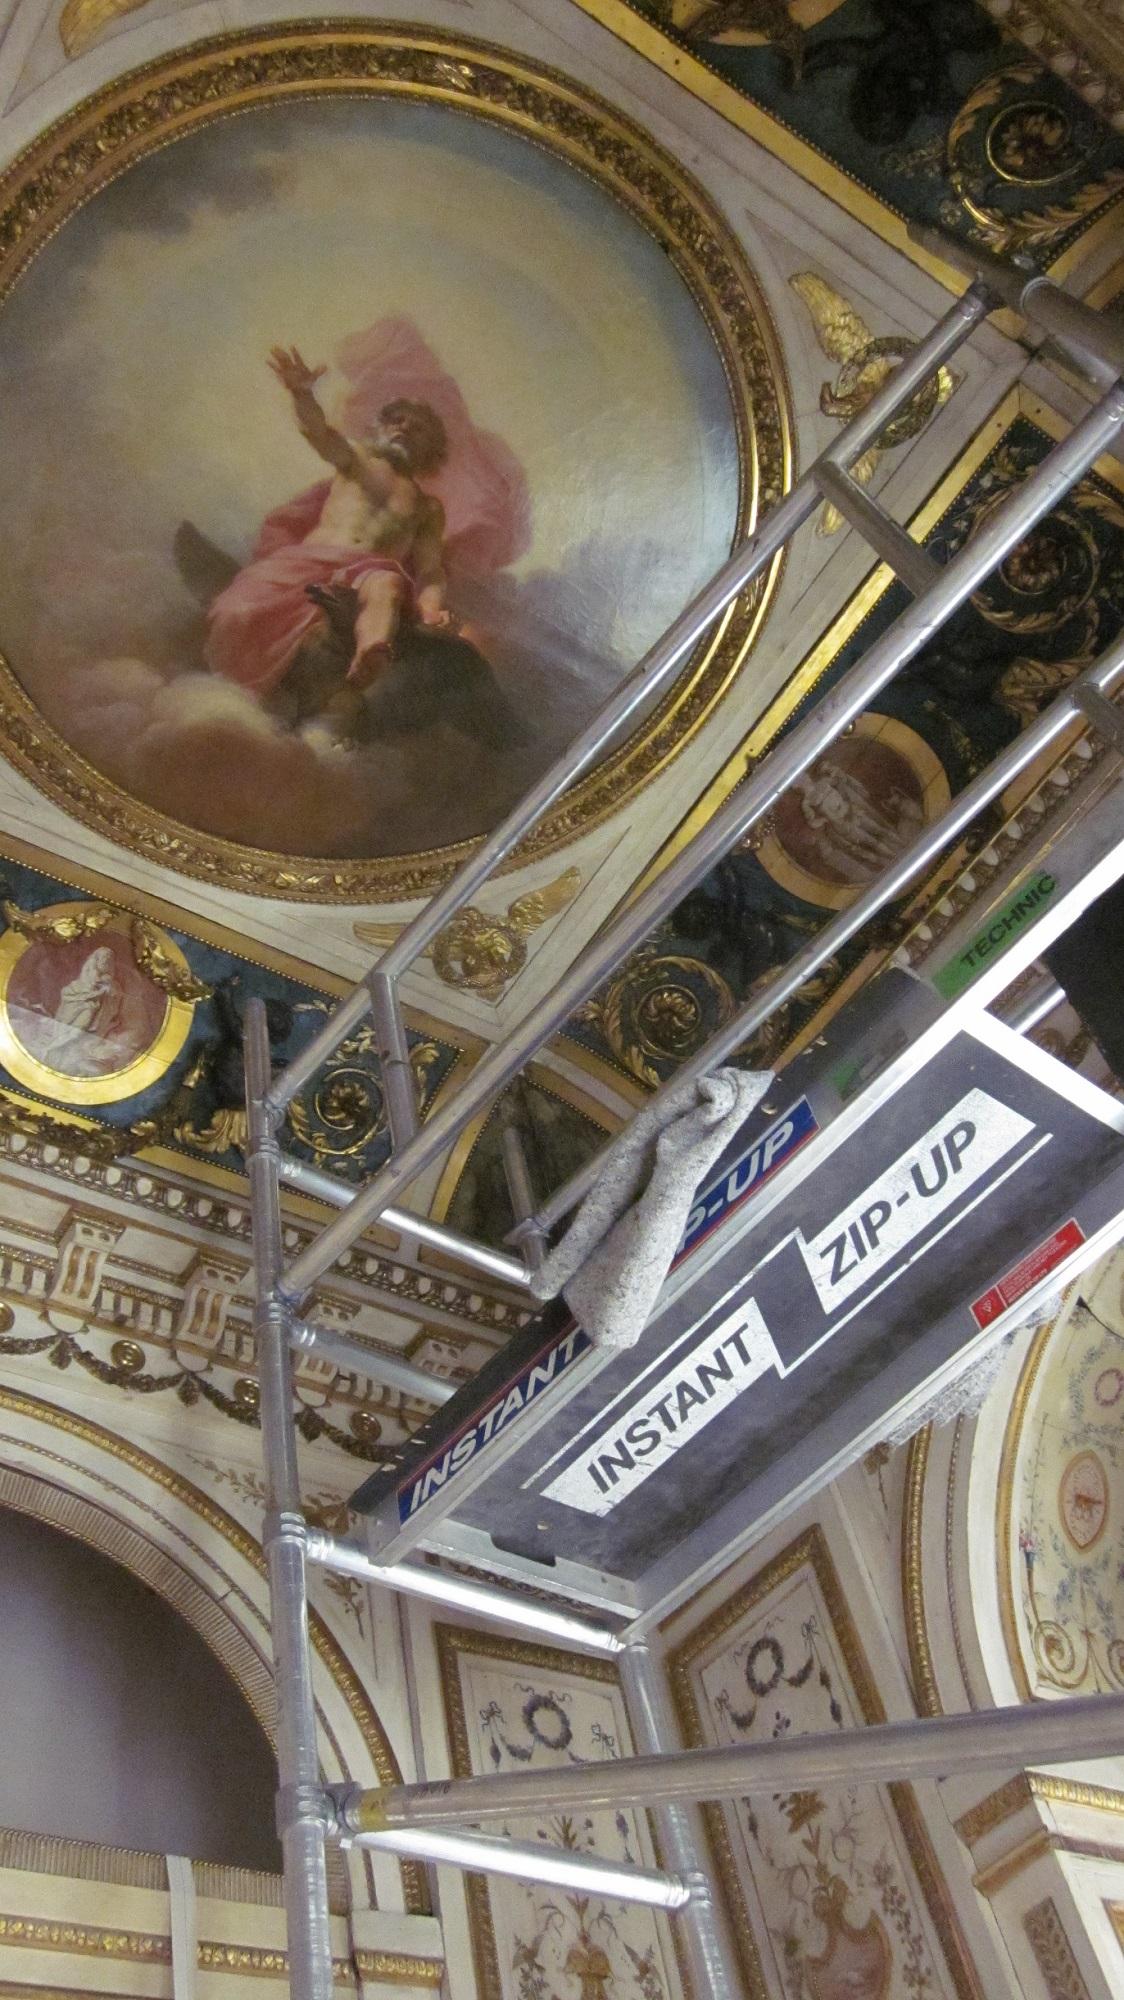 Ceiling of the Sérilly cabinet, during construction, with painting of Jupiter